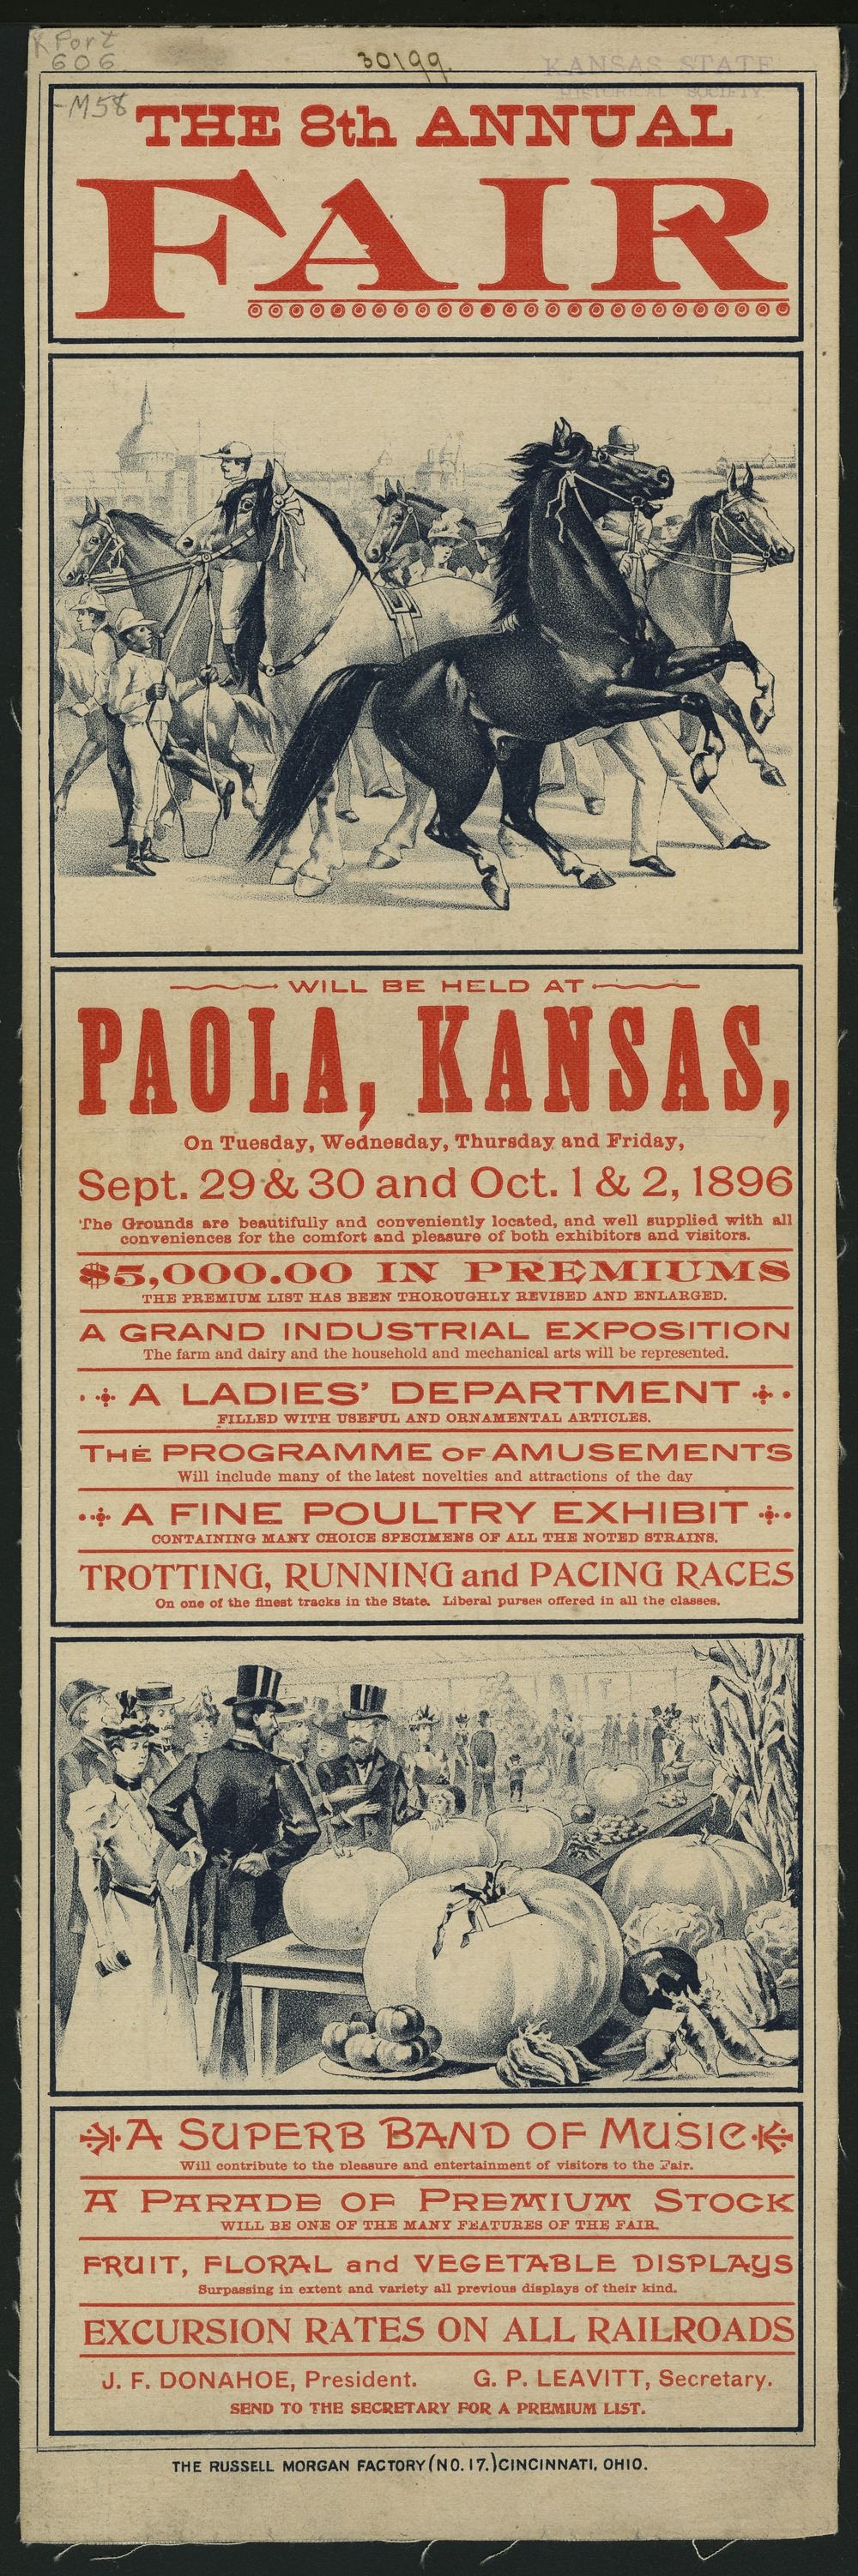 The 8th annual fair will be held at Paola, Kansas - 1